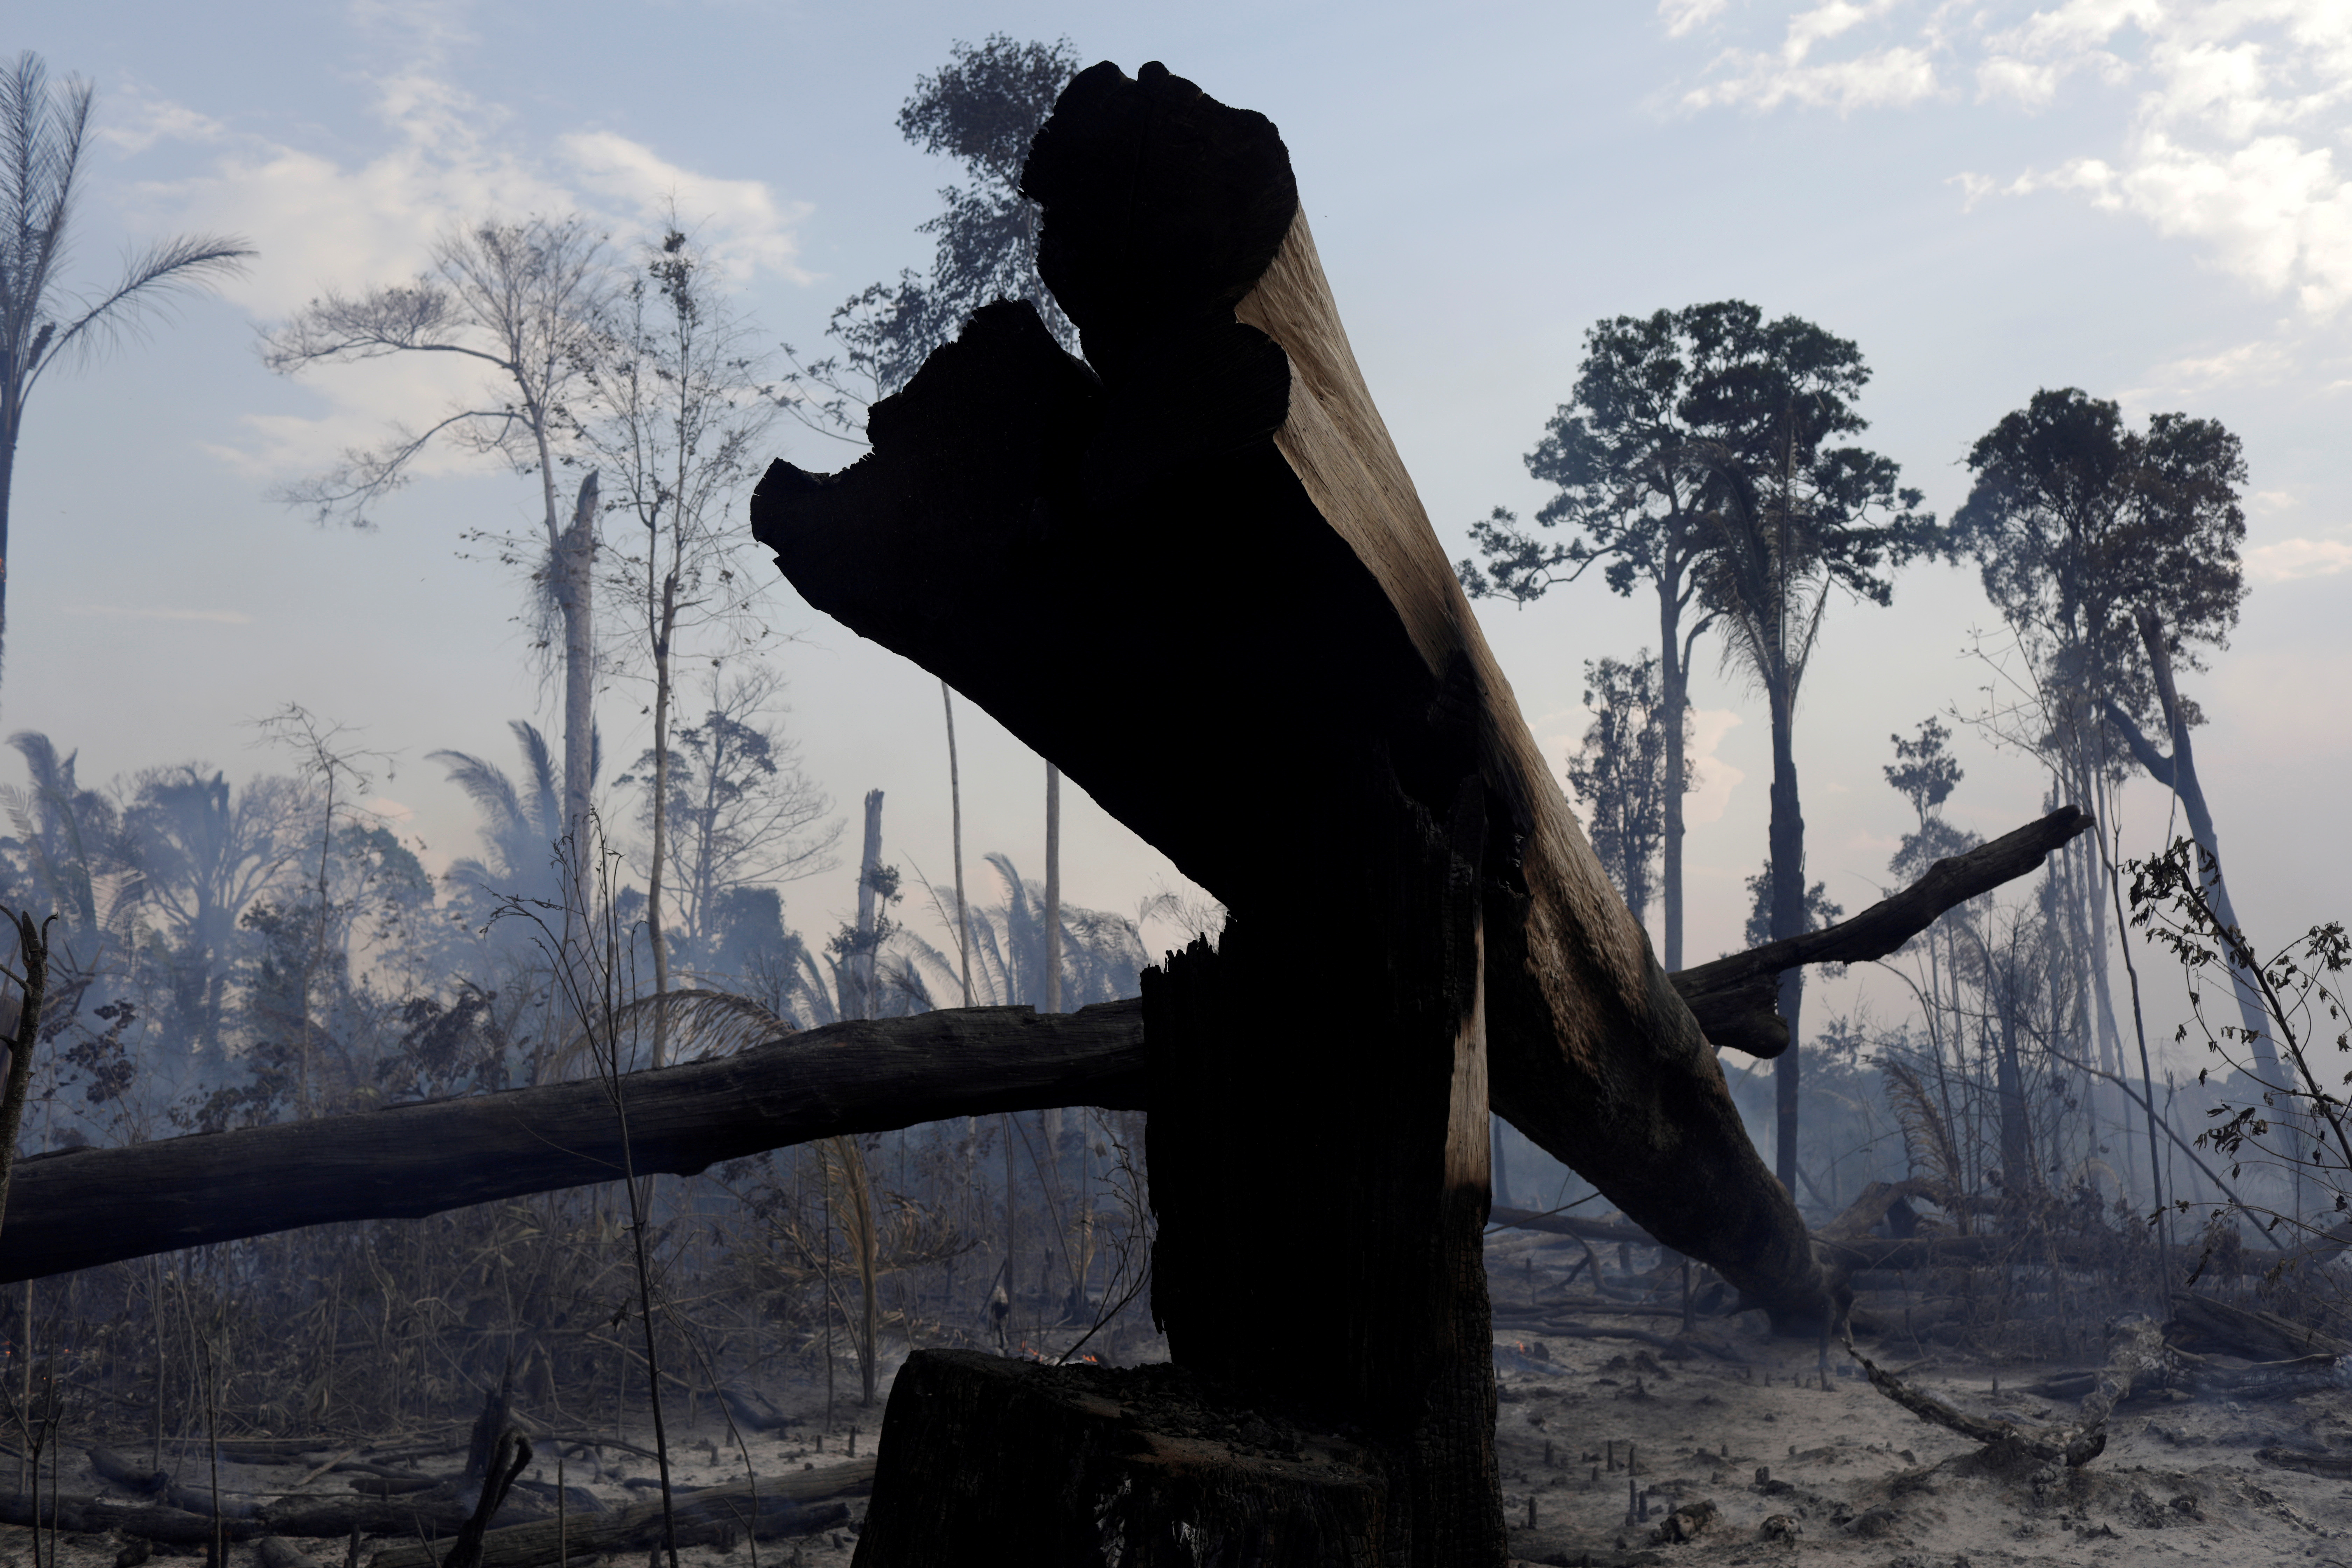 A burning tract of the Amazon forest as it is cleared by farmers, in Rio Pardo, Rondonia, Brazil September 16, 2019. REUTERS/Ricardo Moraes